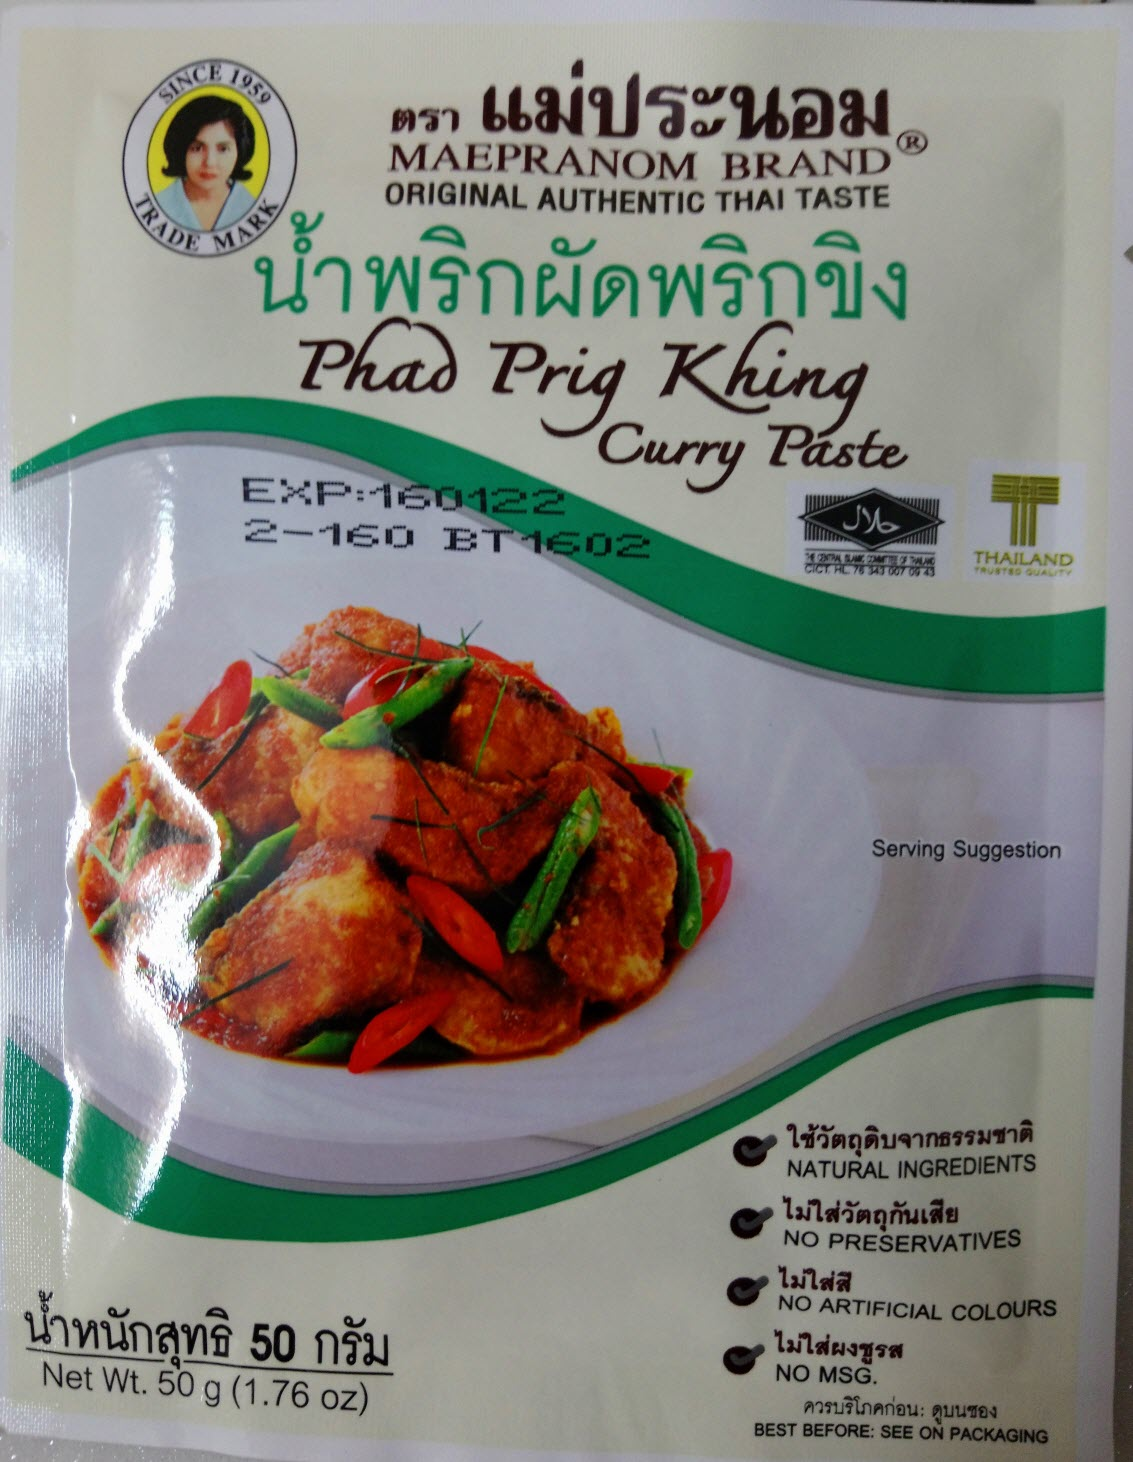 Maepranom Original Authentic Thai Taste Phad Prig Khing Curry Paste No MSG 50g